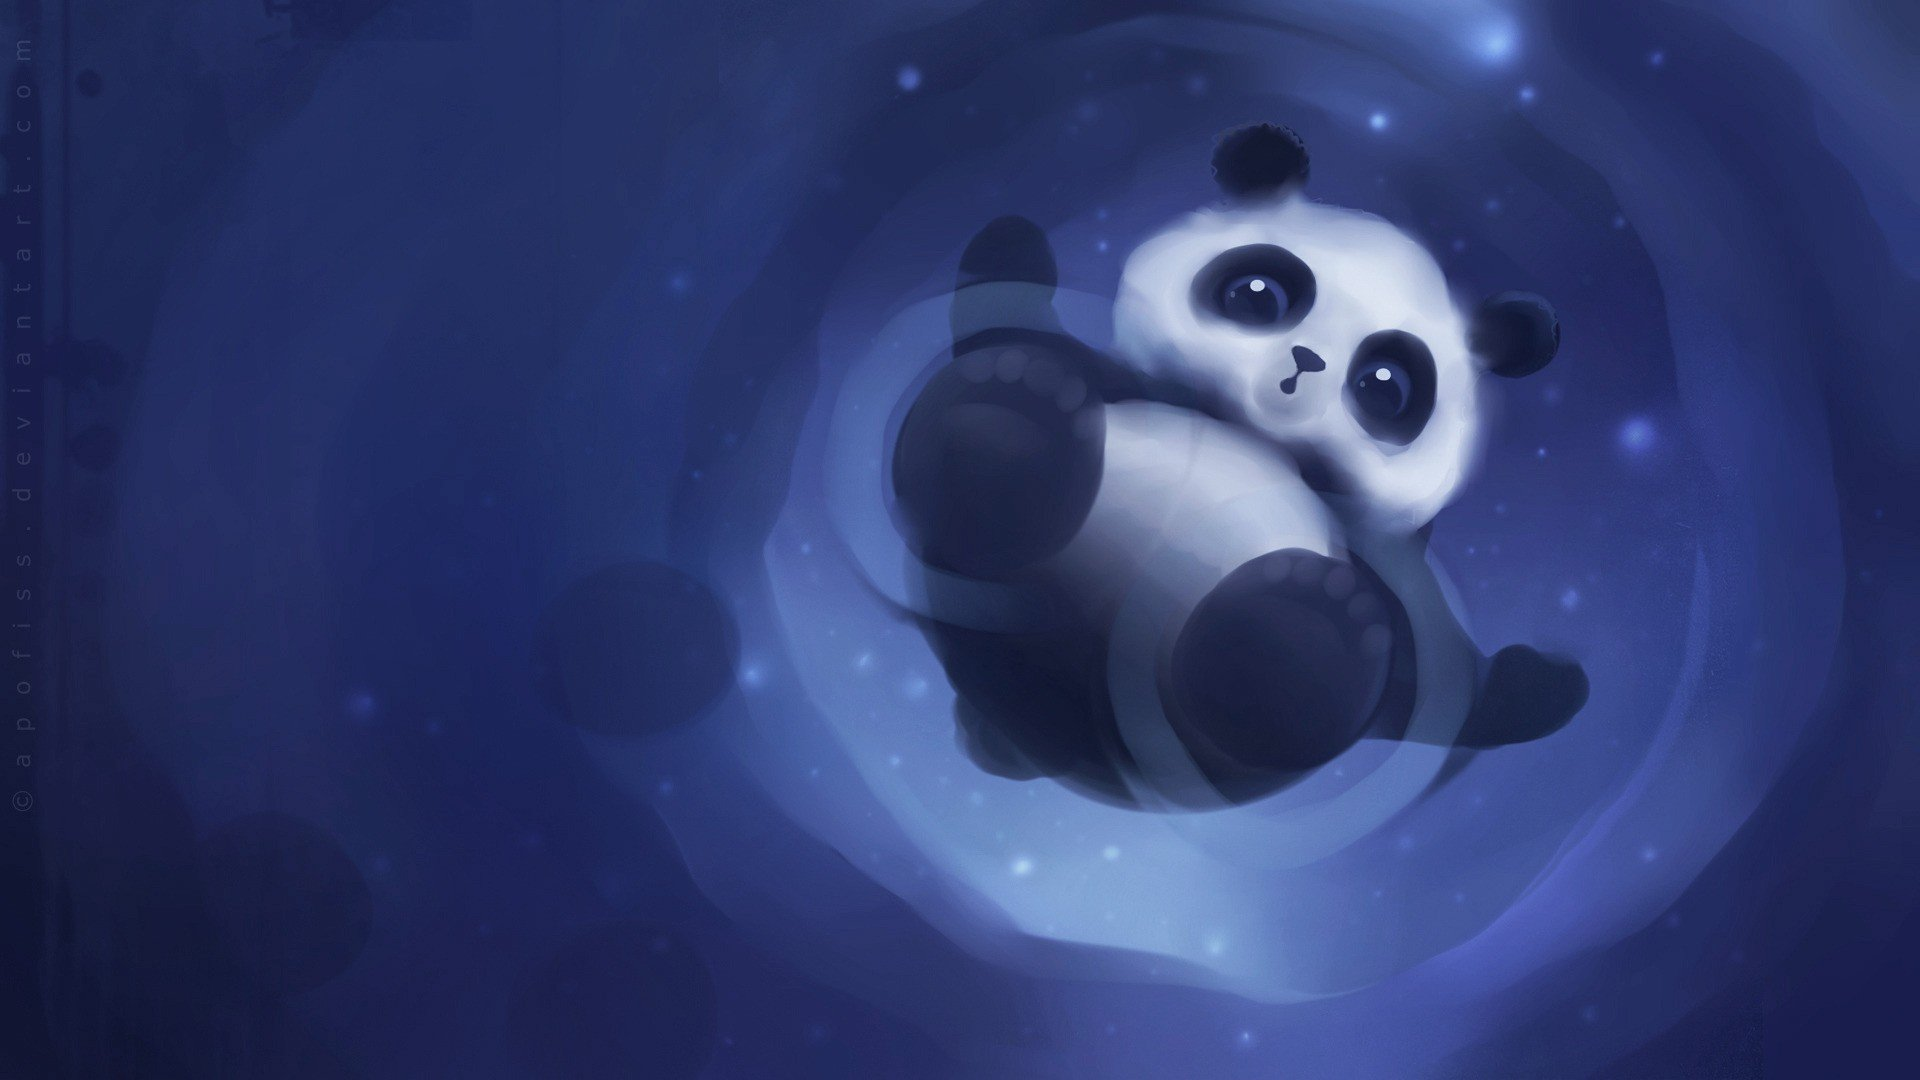 Free download Panda wallpaper ID:300522 hd 1920x1080 for computer